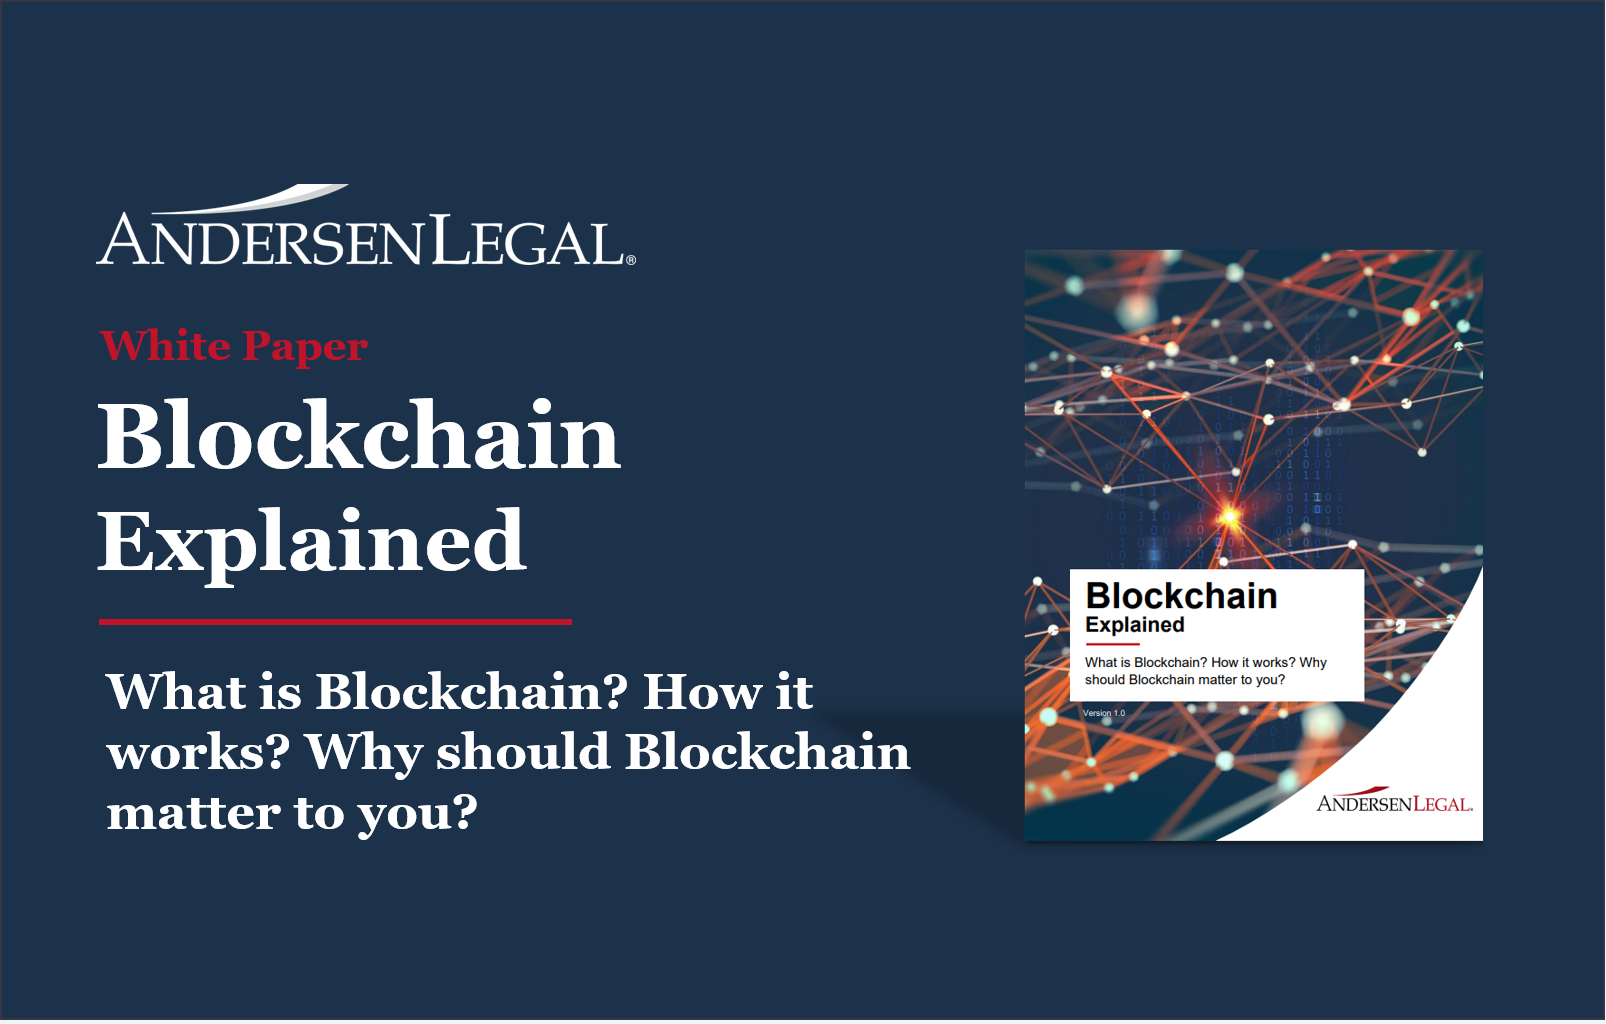 Blockchain Explained: Why should Blockchain matter to you?